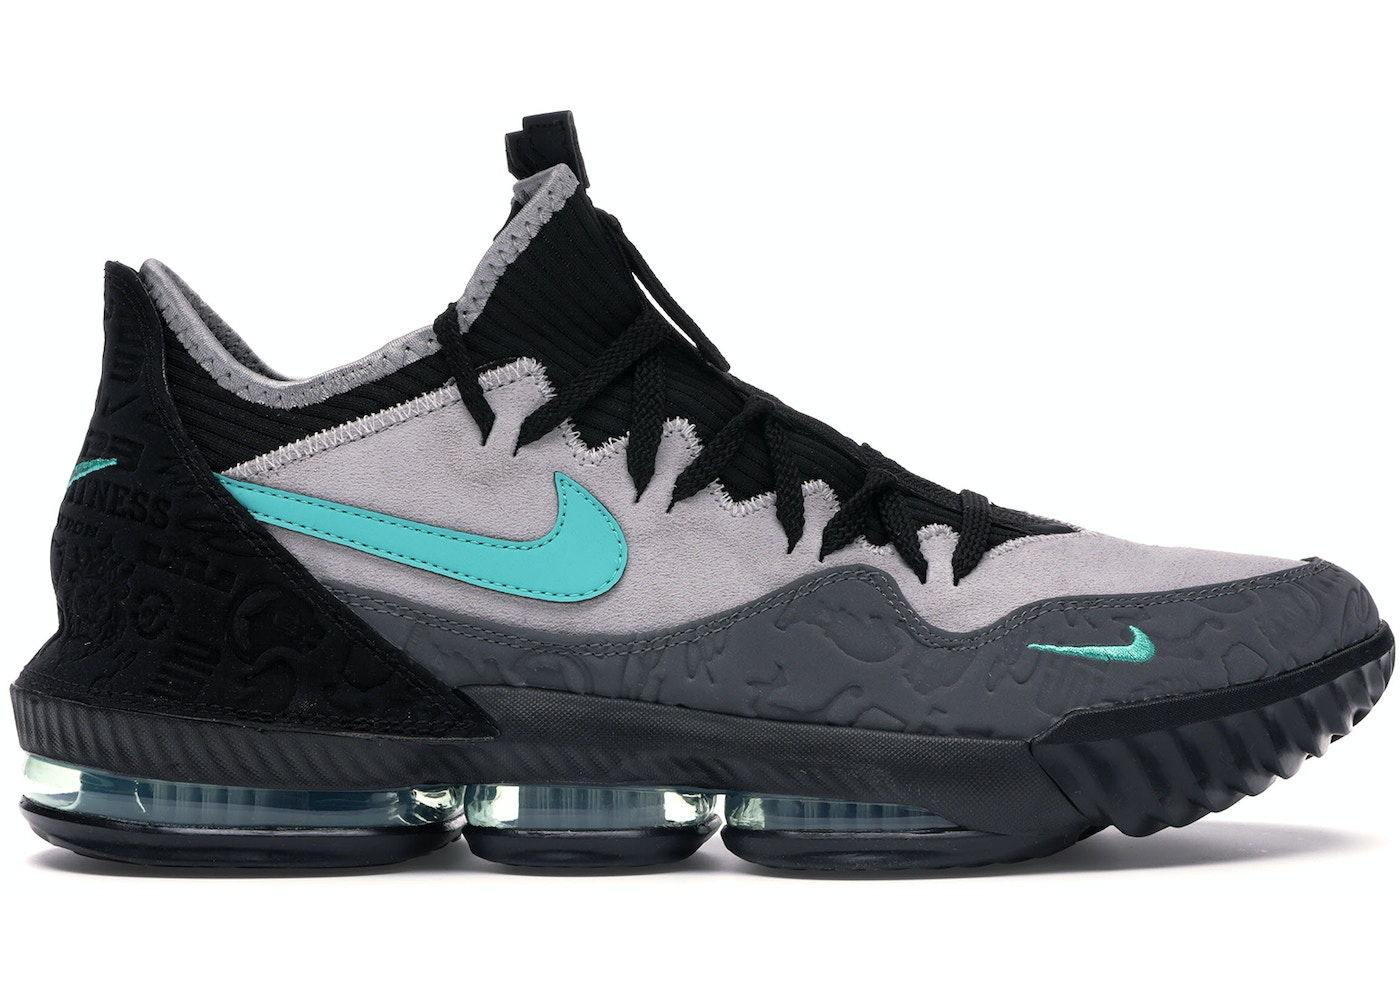 new product dacce 75db8 Buy Nike LeBron 16 Shoes & Deadstock Sneakers